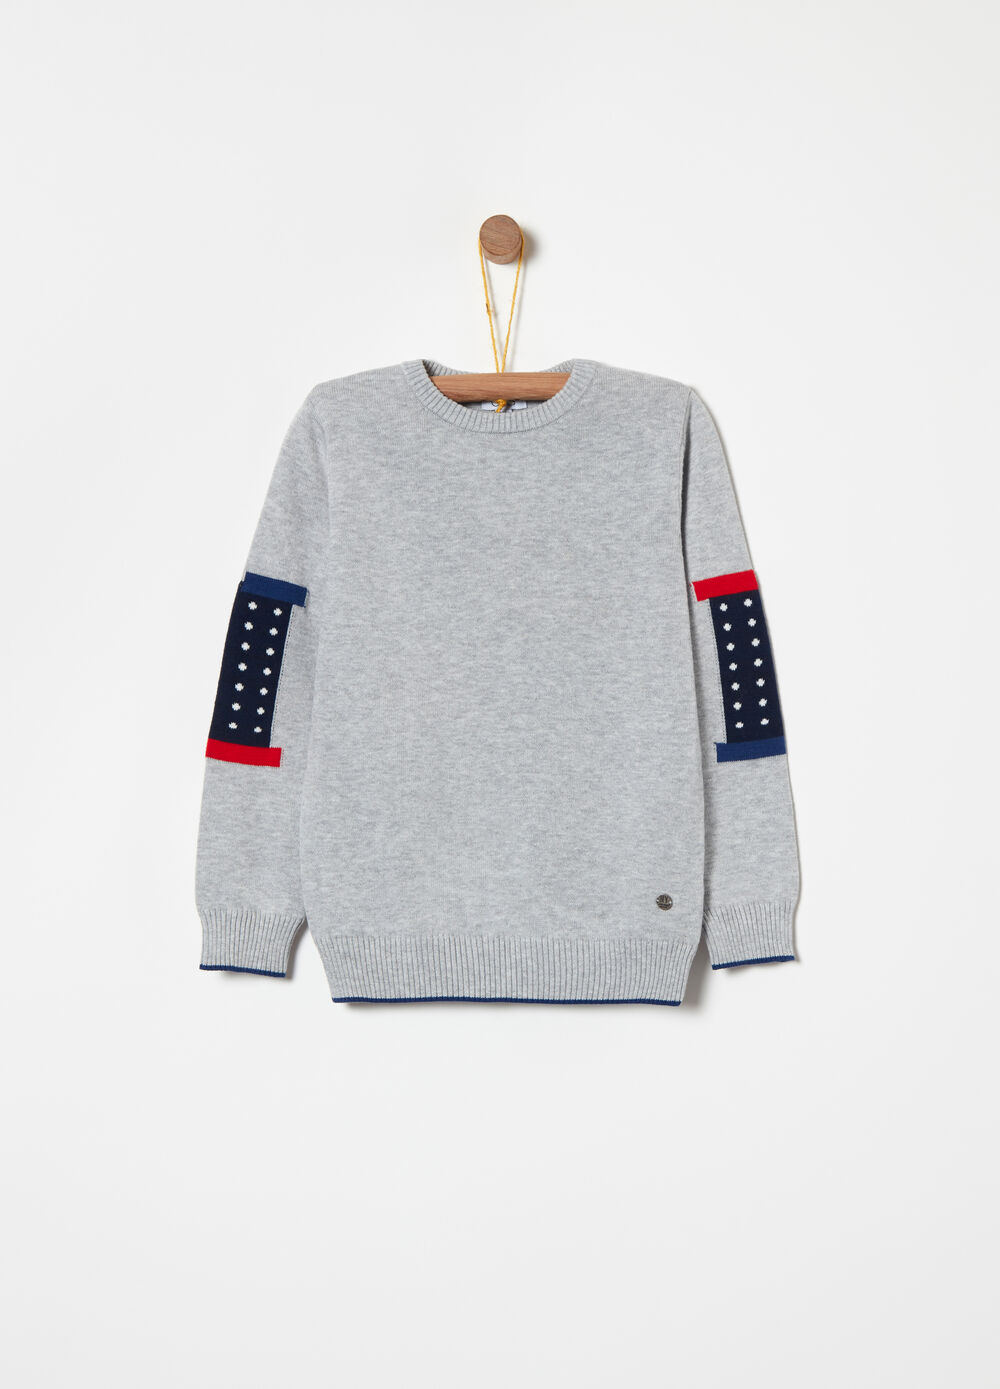 Knitted cotton pullover with jacquard inserts